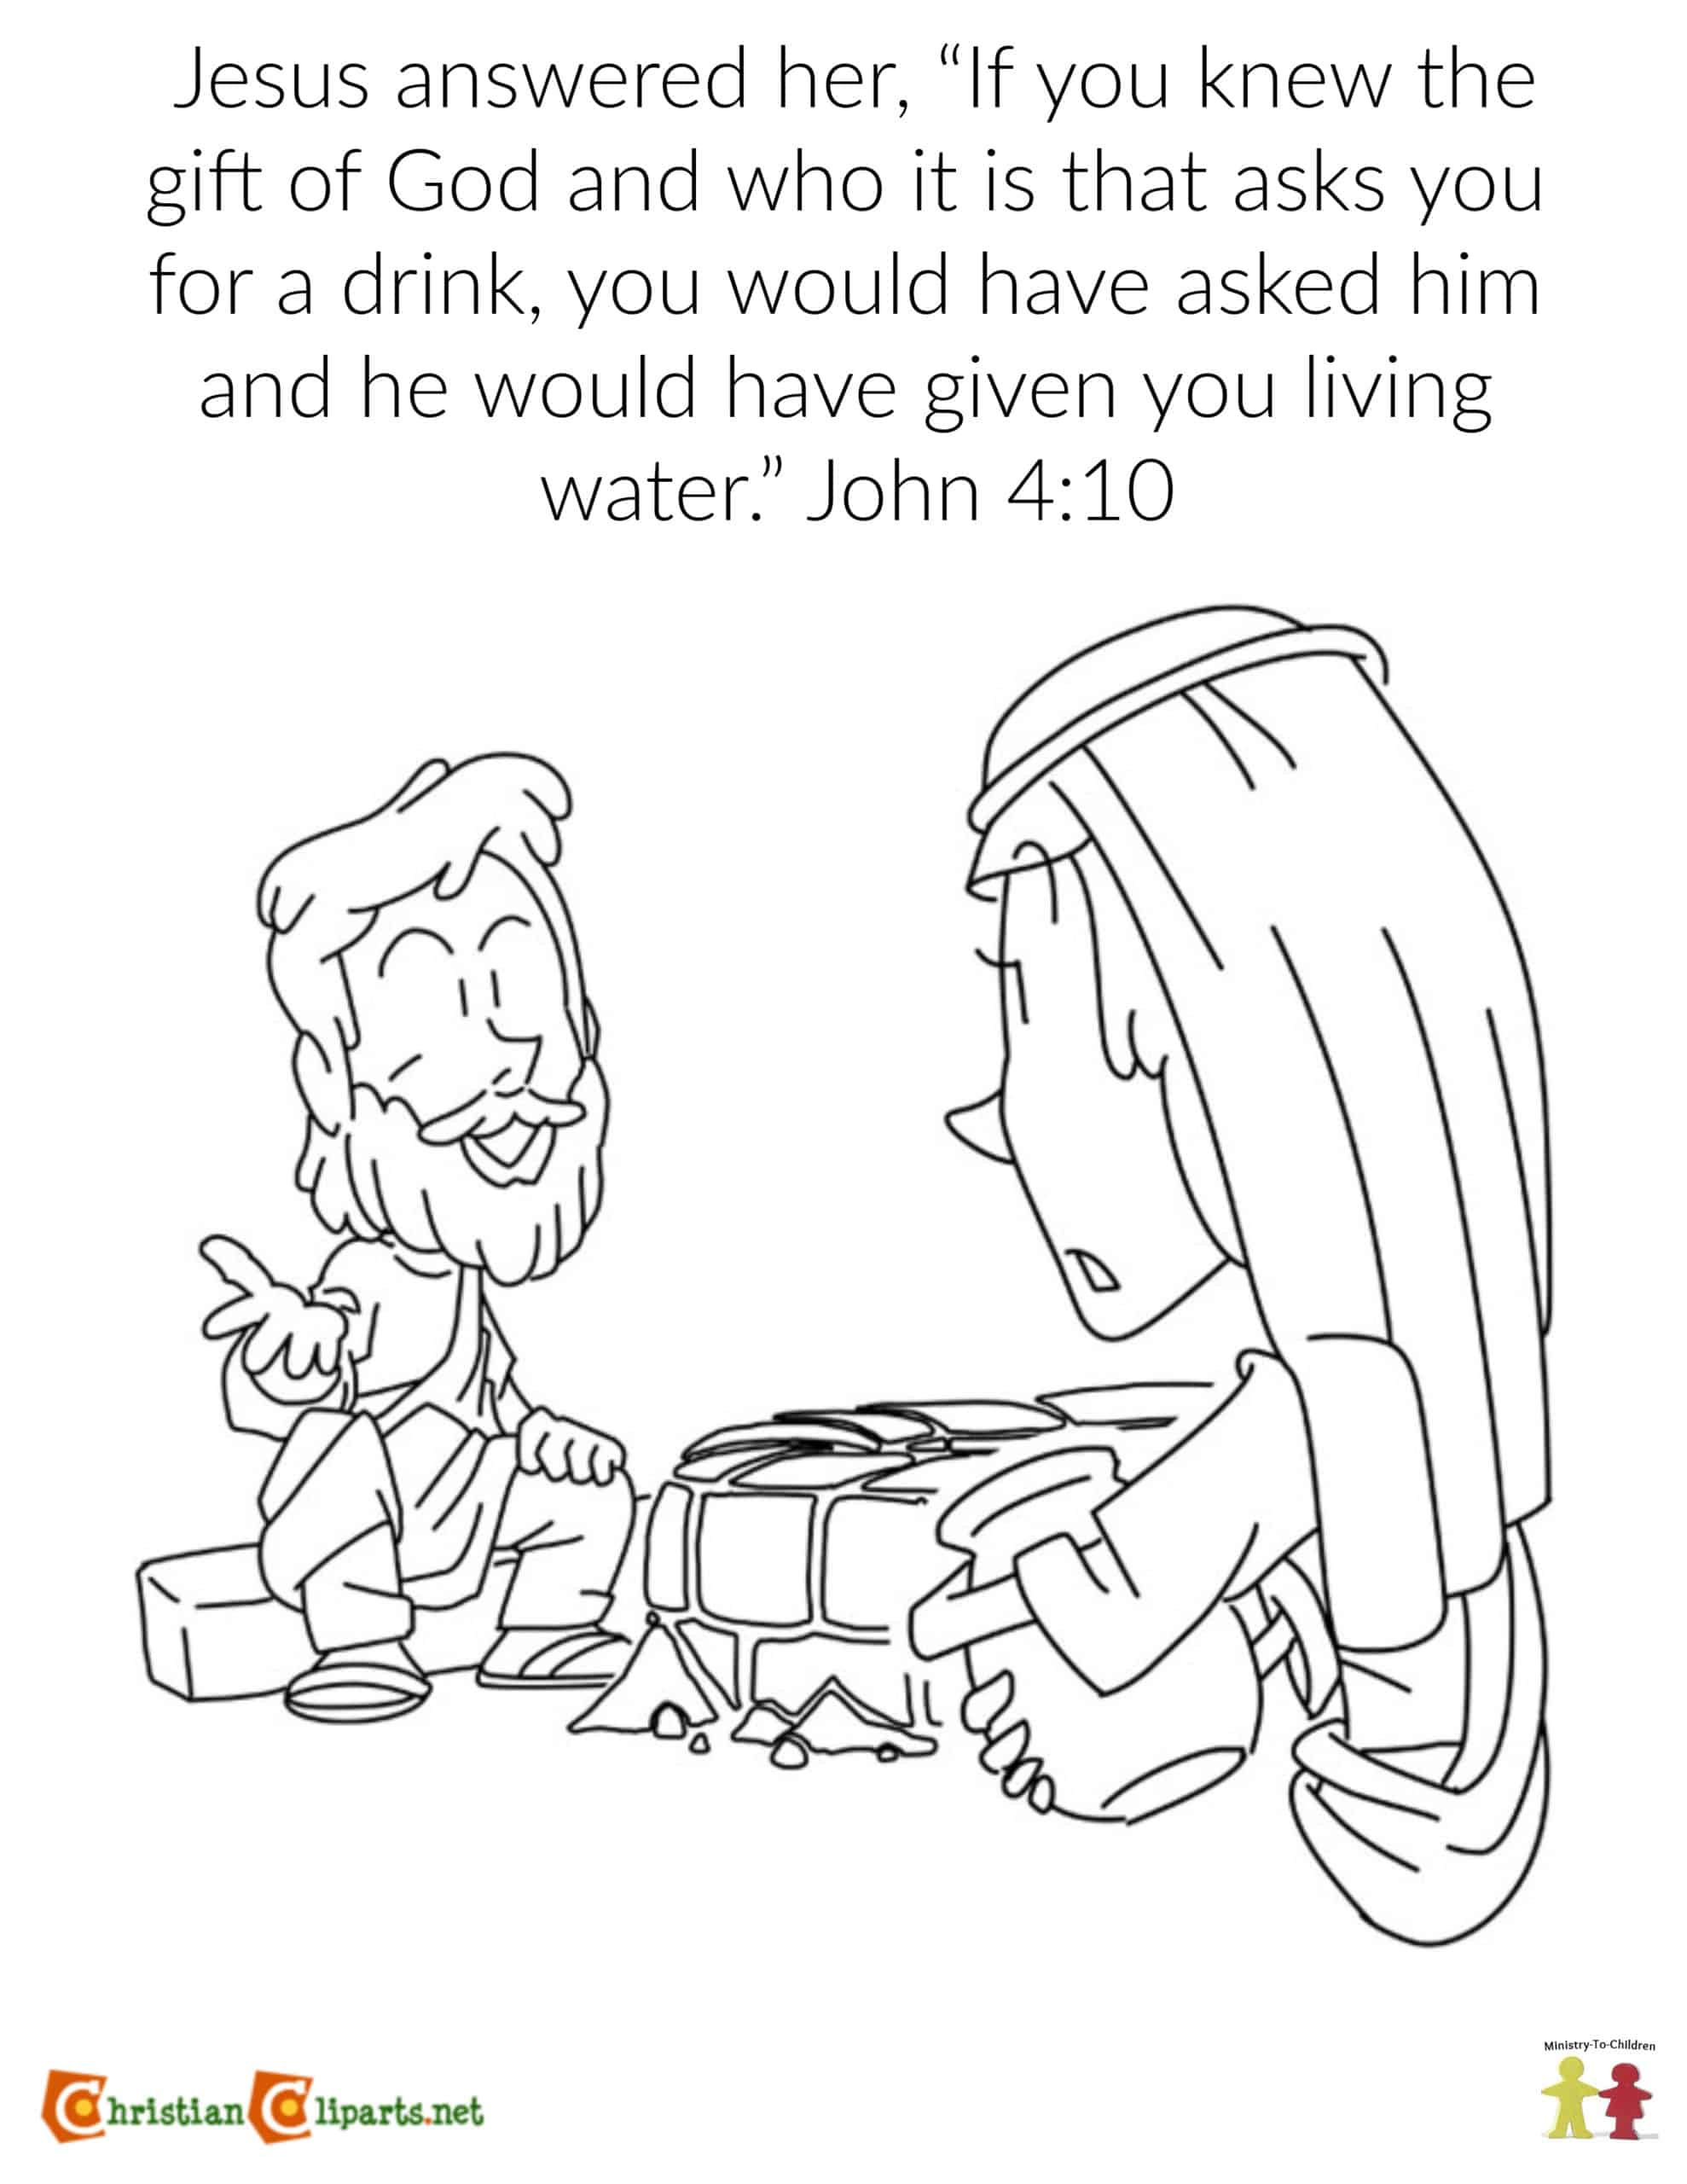 Coloring Page: The Woman at the Well (John 4:10